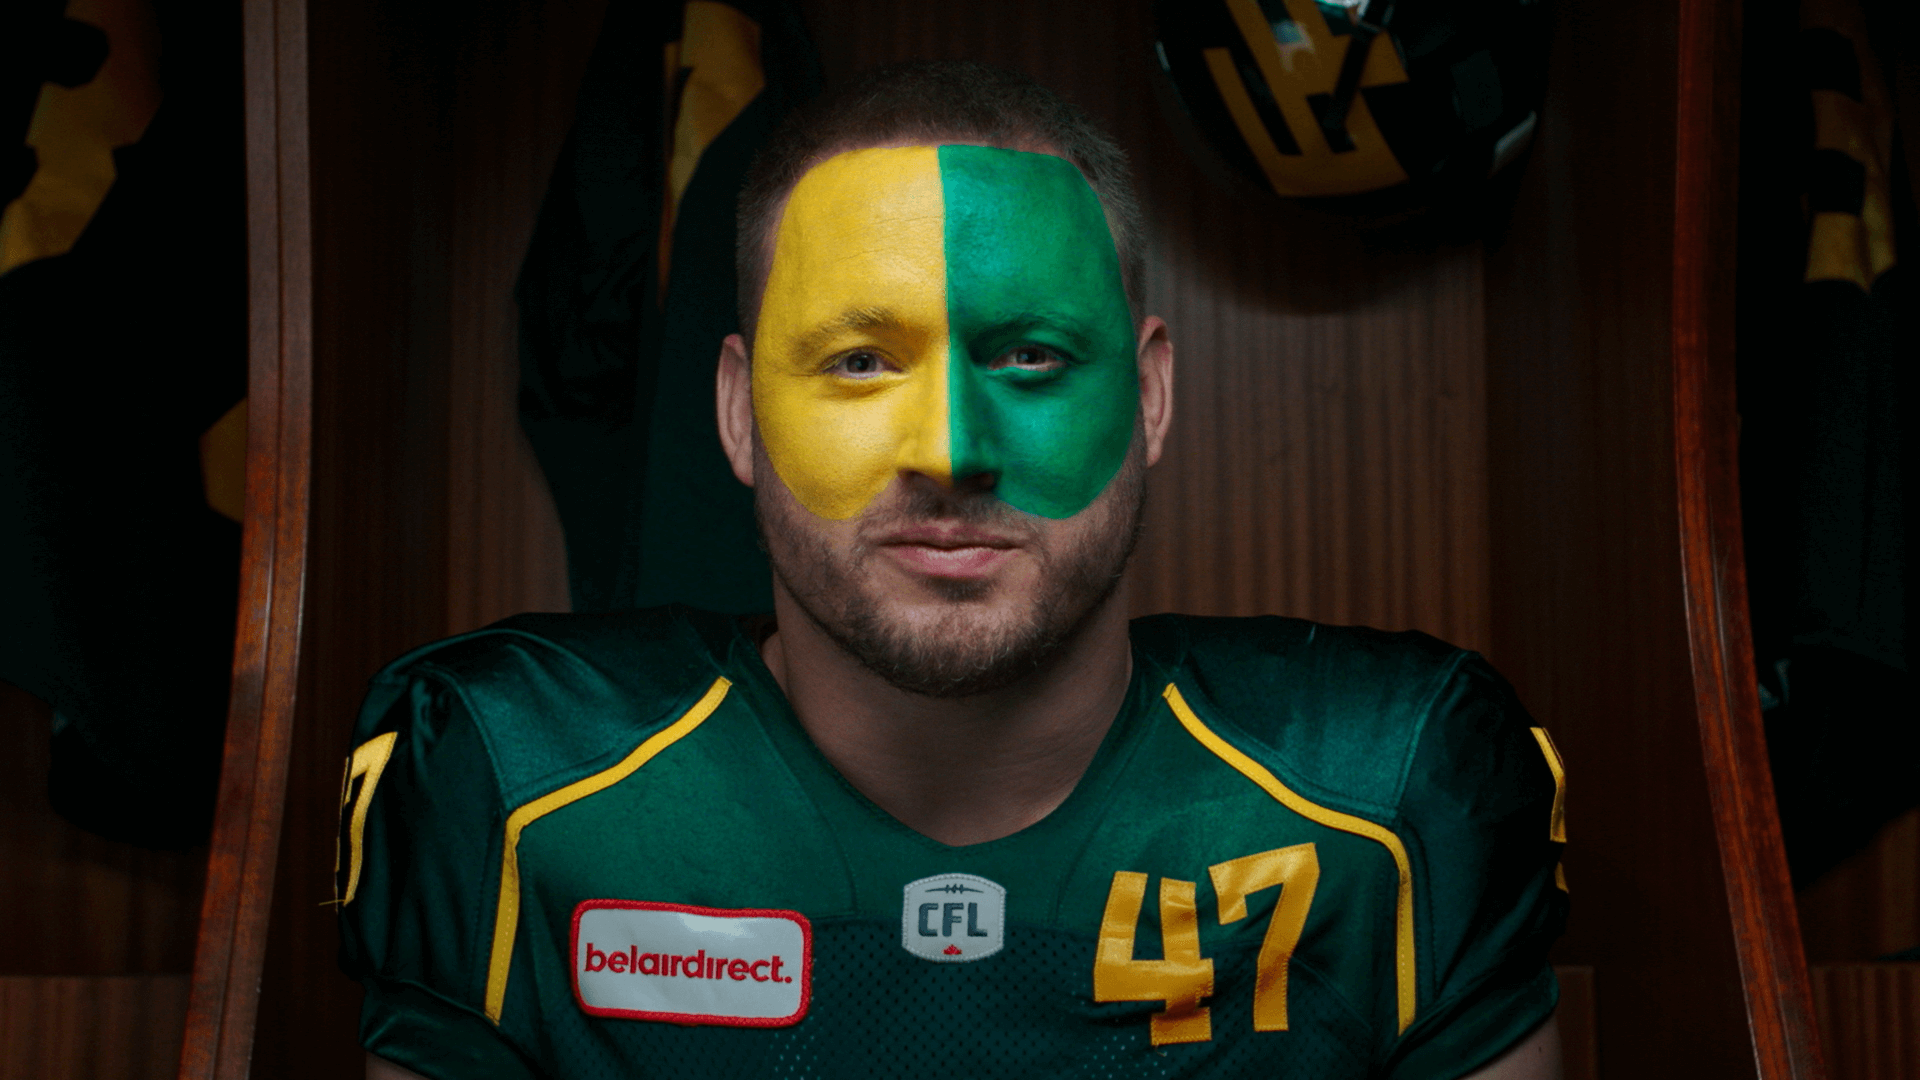 Paint on your best game face to win a Grey Cup trip worth $5,000